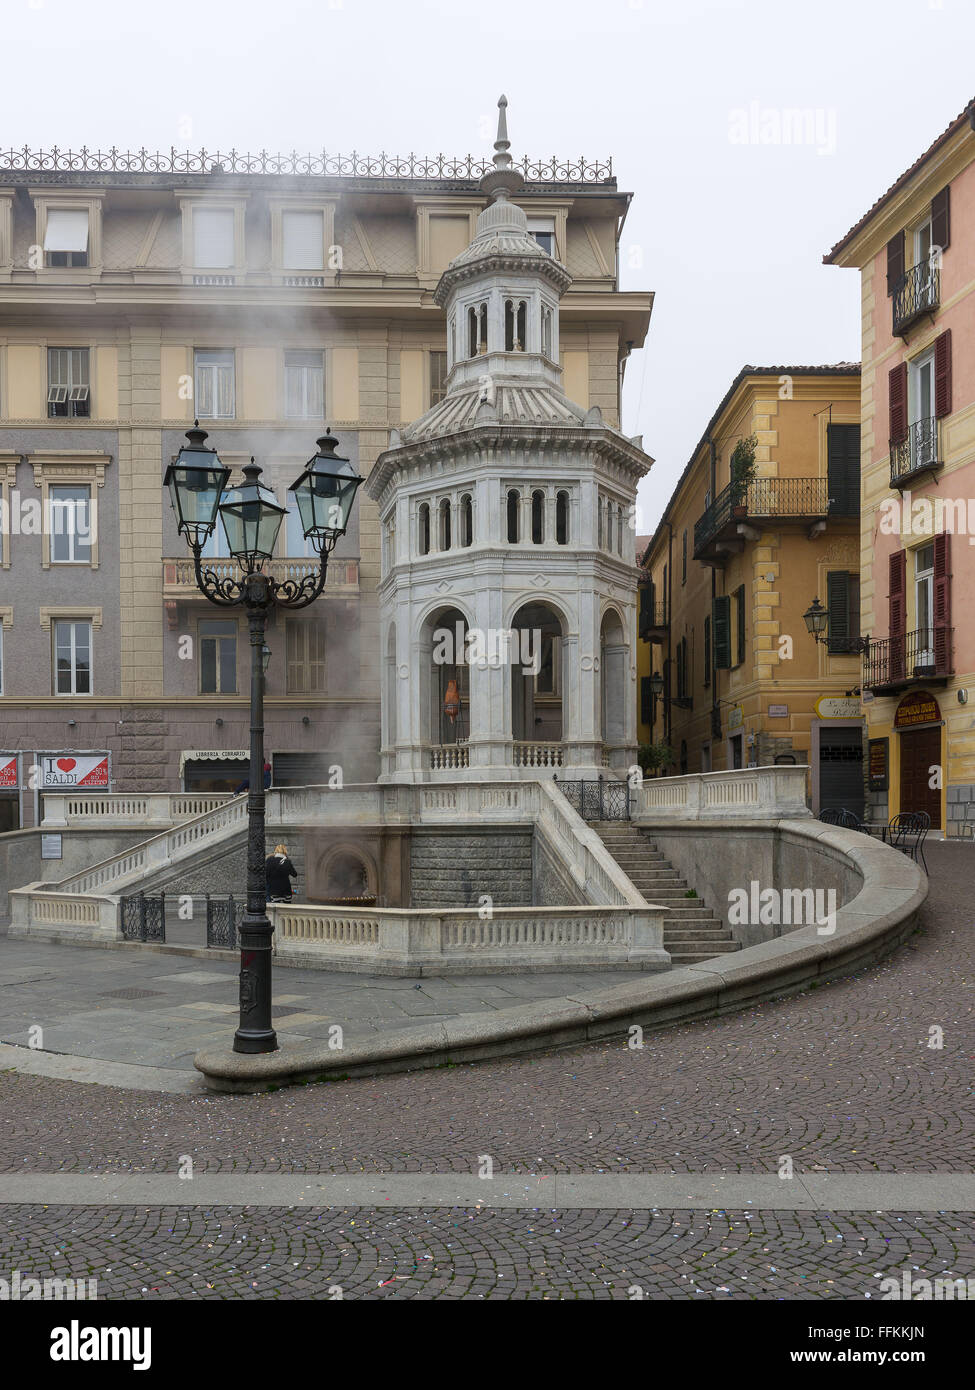 Famous fountain called la bollente known since roman times famous fountain called la bollente known since roman times symbol of acqui terme in piedmont biocorpaavc Choice Image